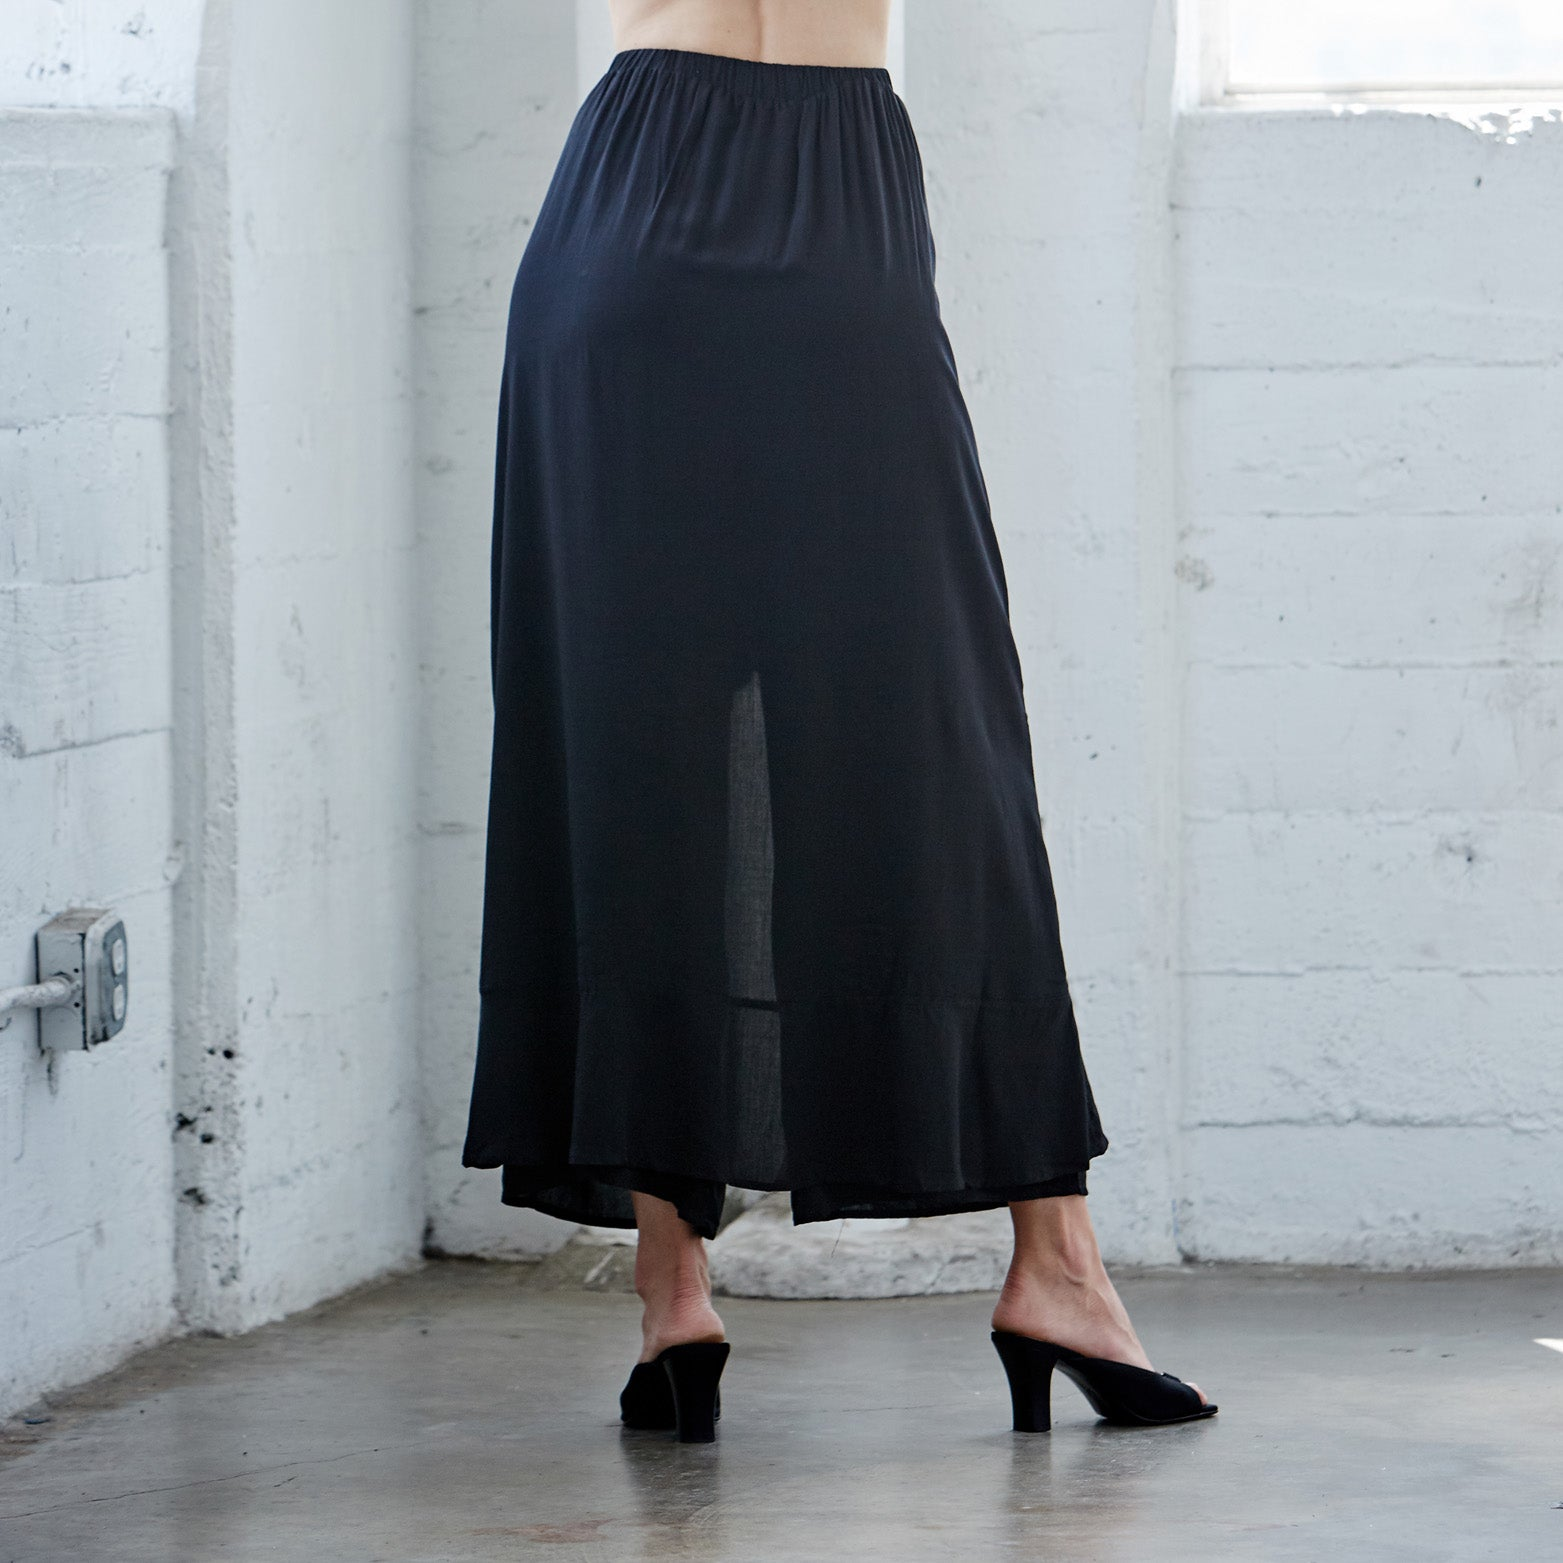 Ruffle Me Softly Skirt Pants - Love, Kuza